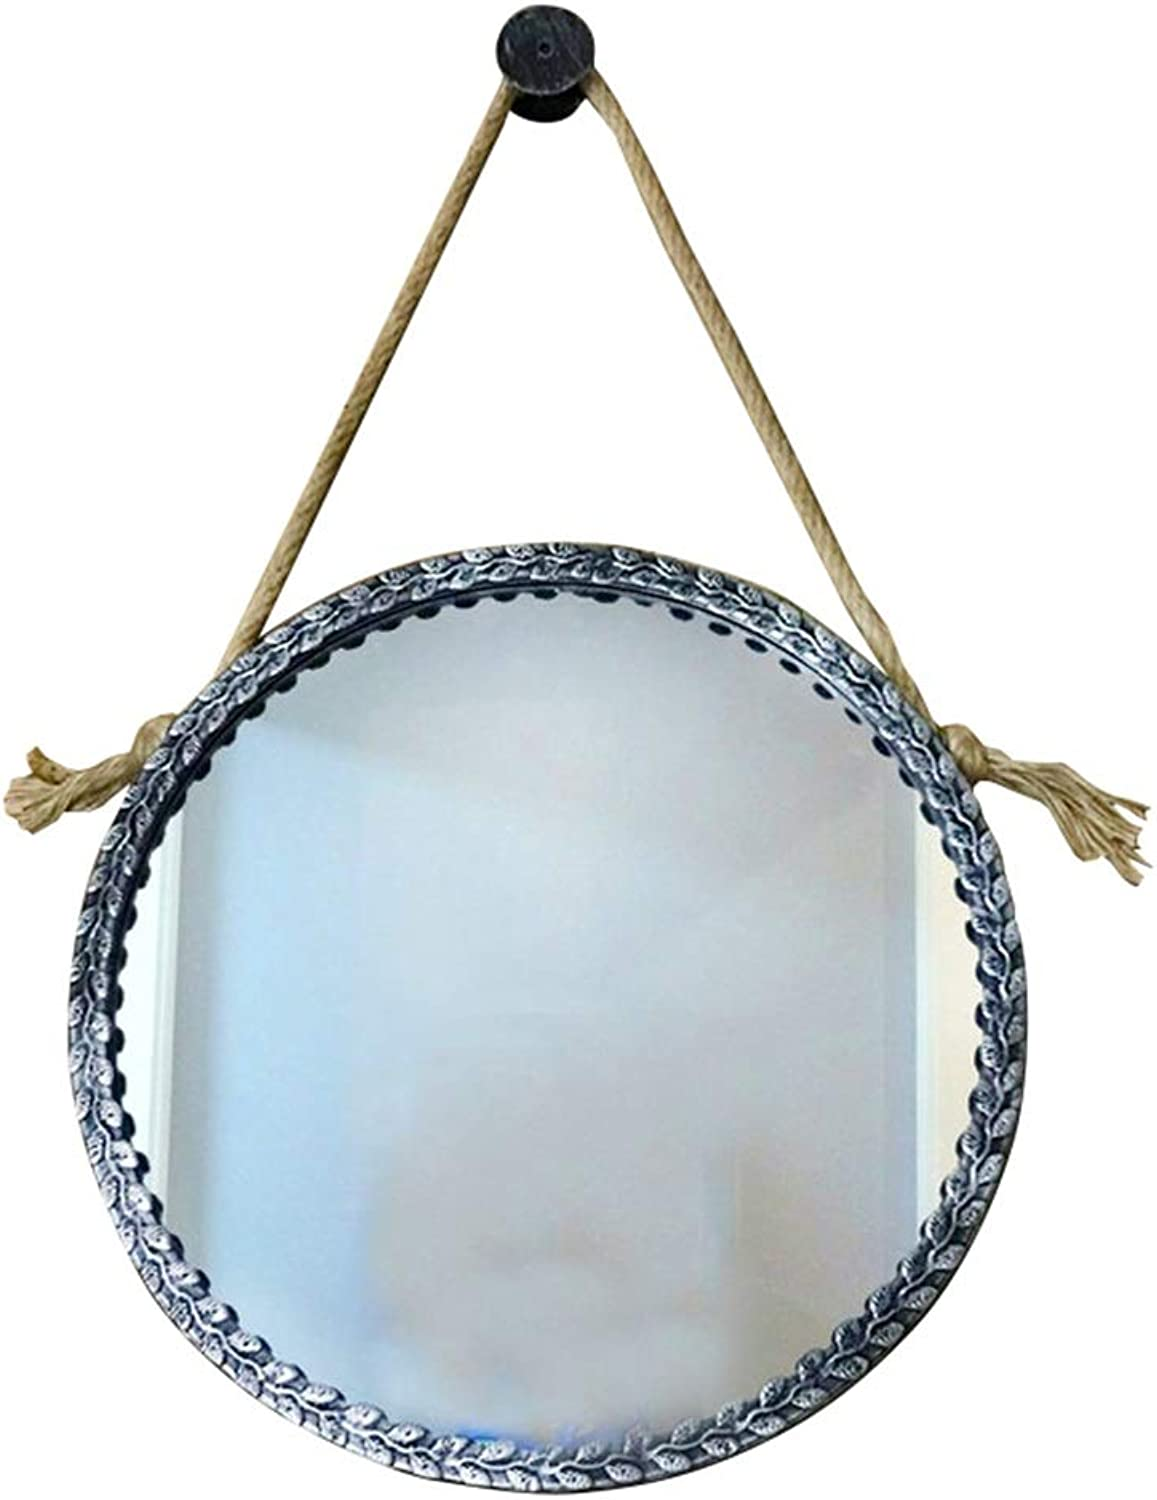 Retro Round Wall Bathroom Mirror Hanging Mirror with Rope   Circle Wall Mounted Vanity Mirror and Shaving Mirror   Wall Decorative Mirror Holde   Metal Frame (Size   Diameter 40cm)